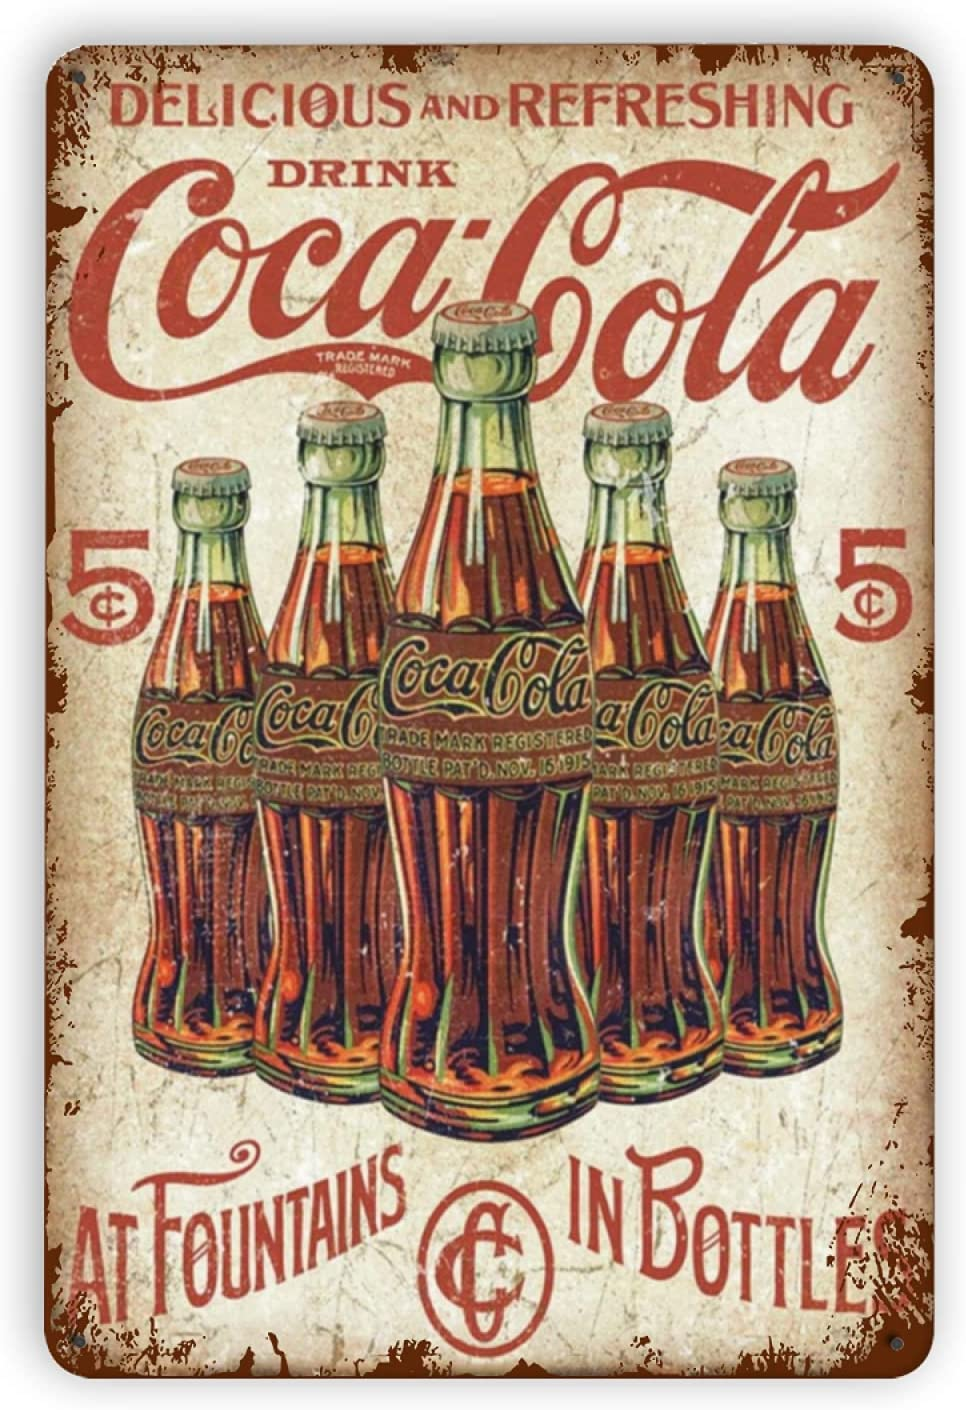 Pizigci Delicious and Refreshing Drink Coca Cola Metal Vintage Man Cave Tin Sign Wall Decor Fashion Garage Tin Sign Wall Plaque Poster for Home Decor, Bars, Cafes Pubs,12x8 Inch